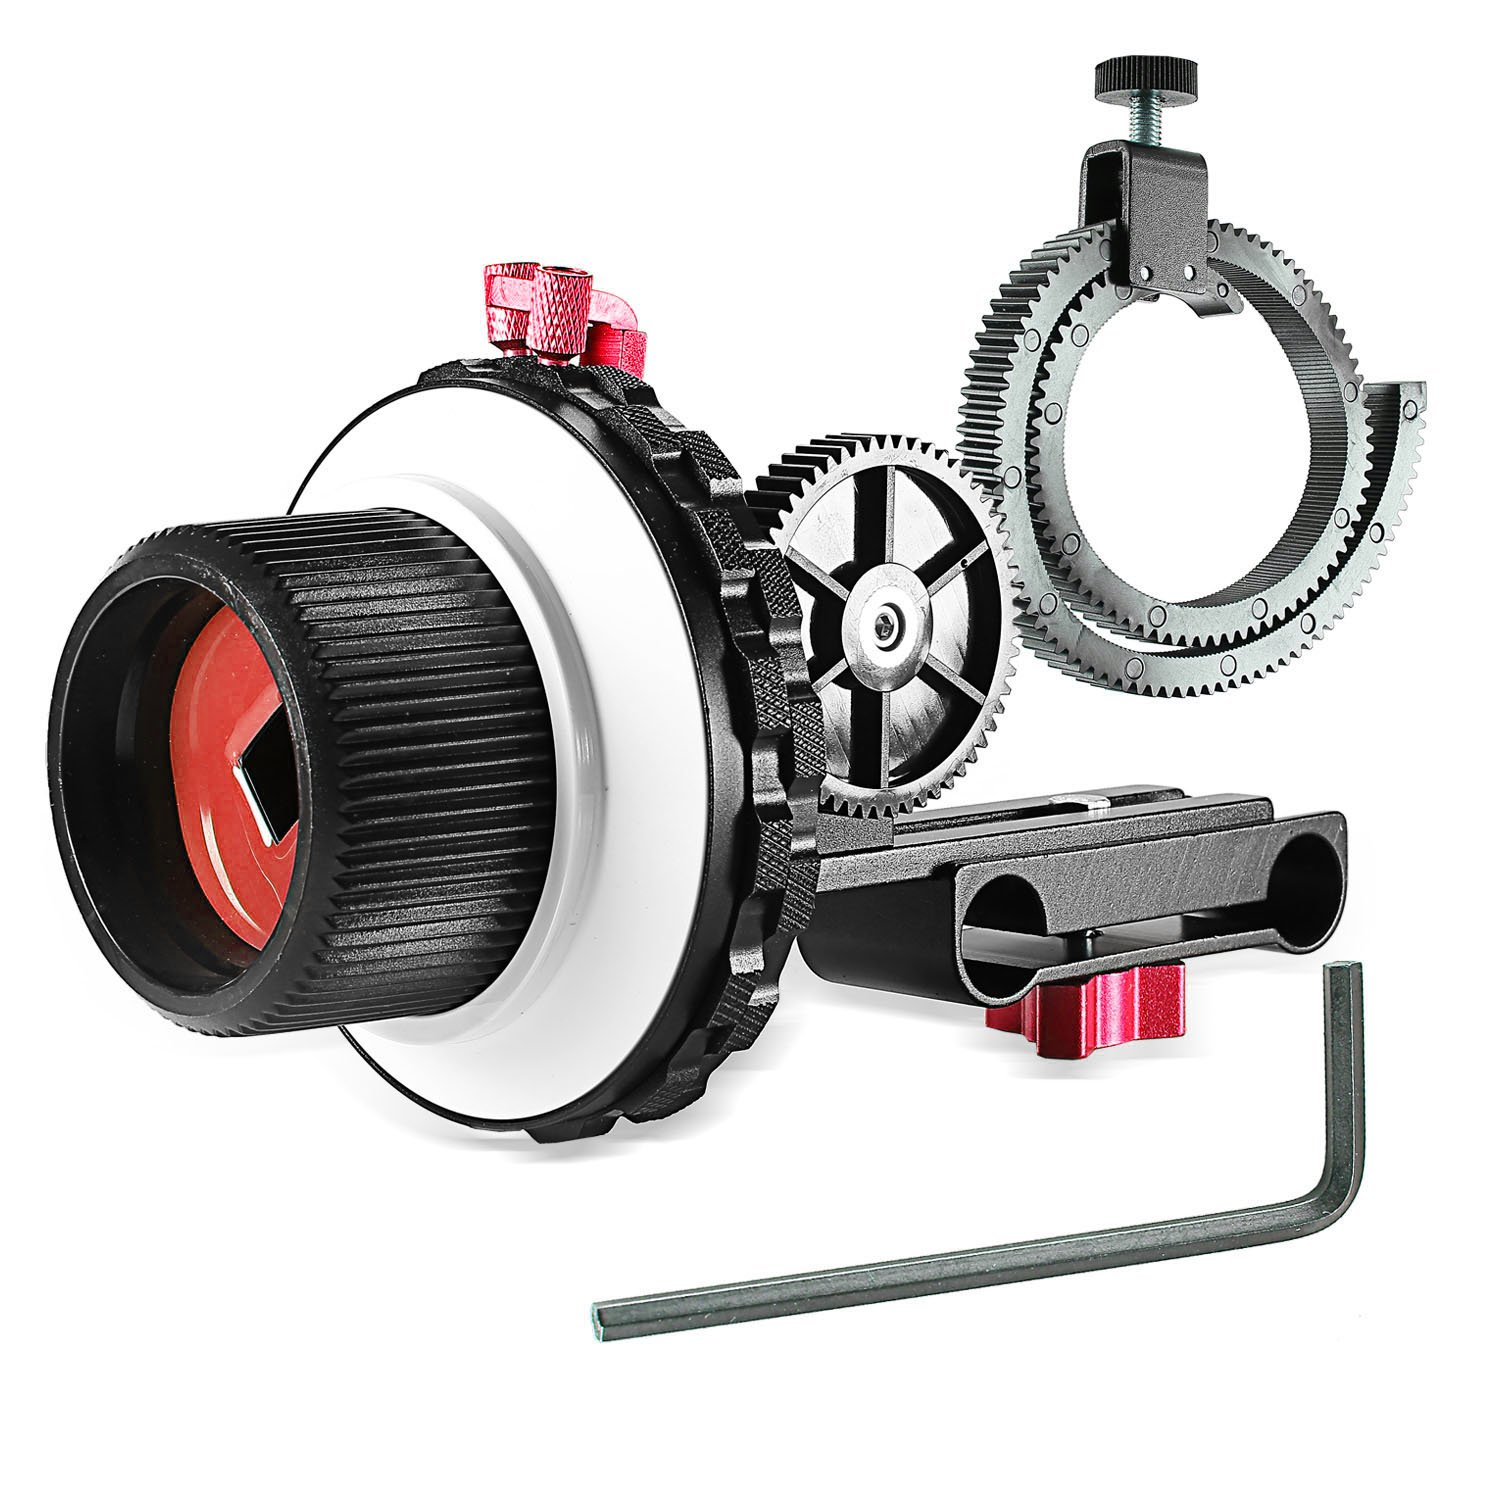 Neewer A-B Stop Follow Focus C2 with Gear Ring Belt for DSLR Cameras Such as Nikon, Canon, Sony DV/Camcorder/Film/Video Cameras, Fits 15mm Rod Mounts, Shoulder Supports 10072220